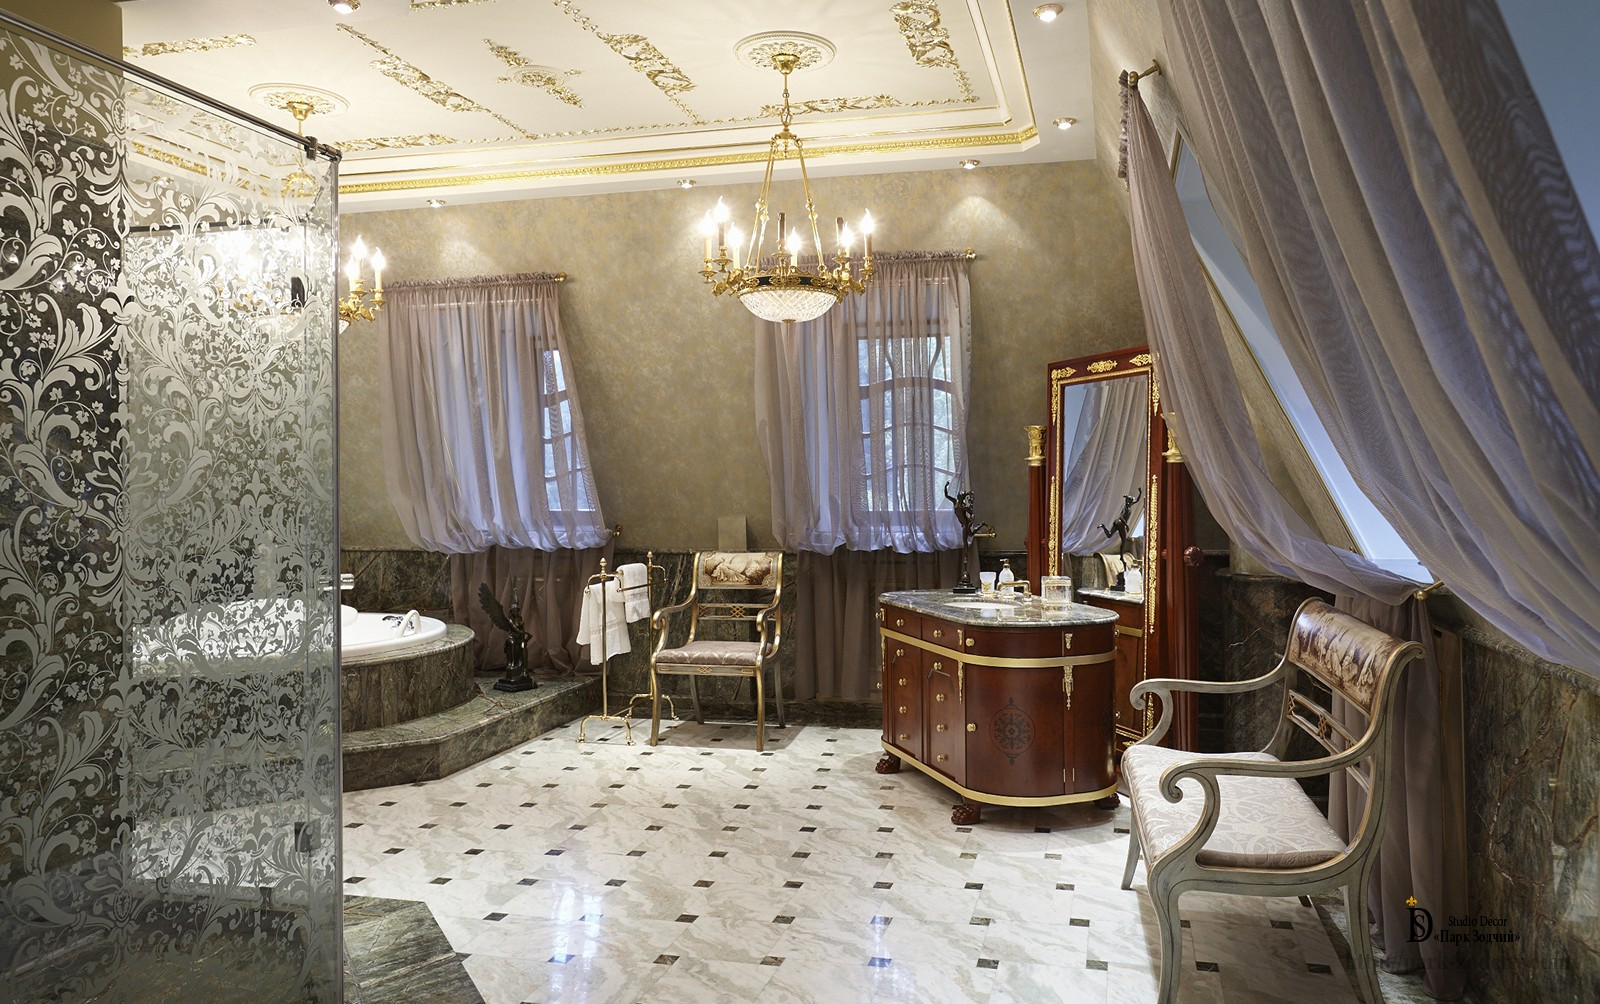 Luxurious bathroom with gilded stucco